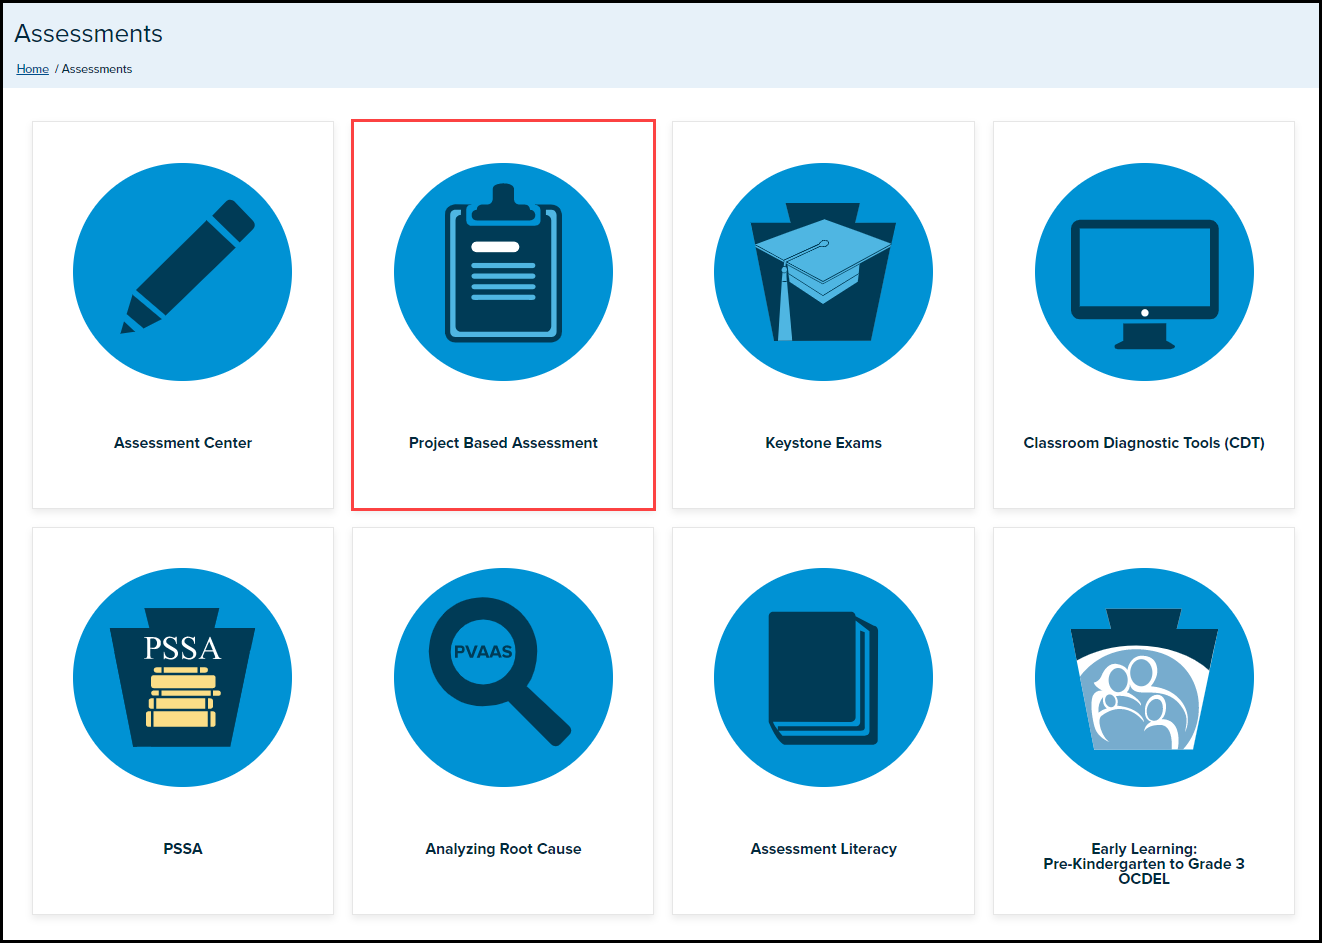 SAS Assessments menu page with Project Based Assessment button highlighted